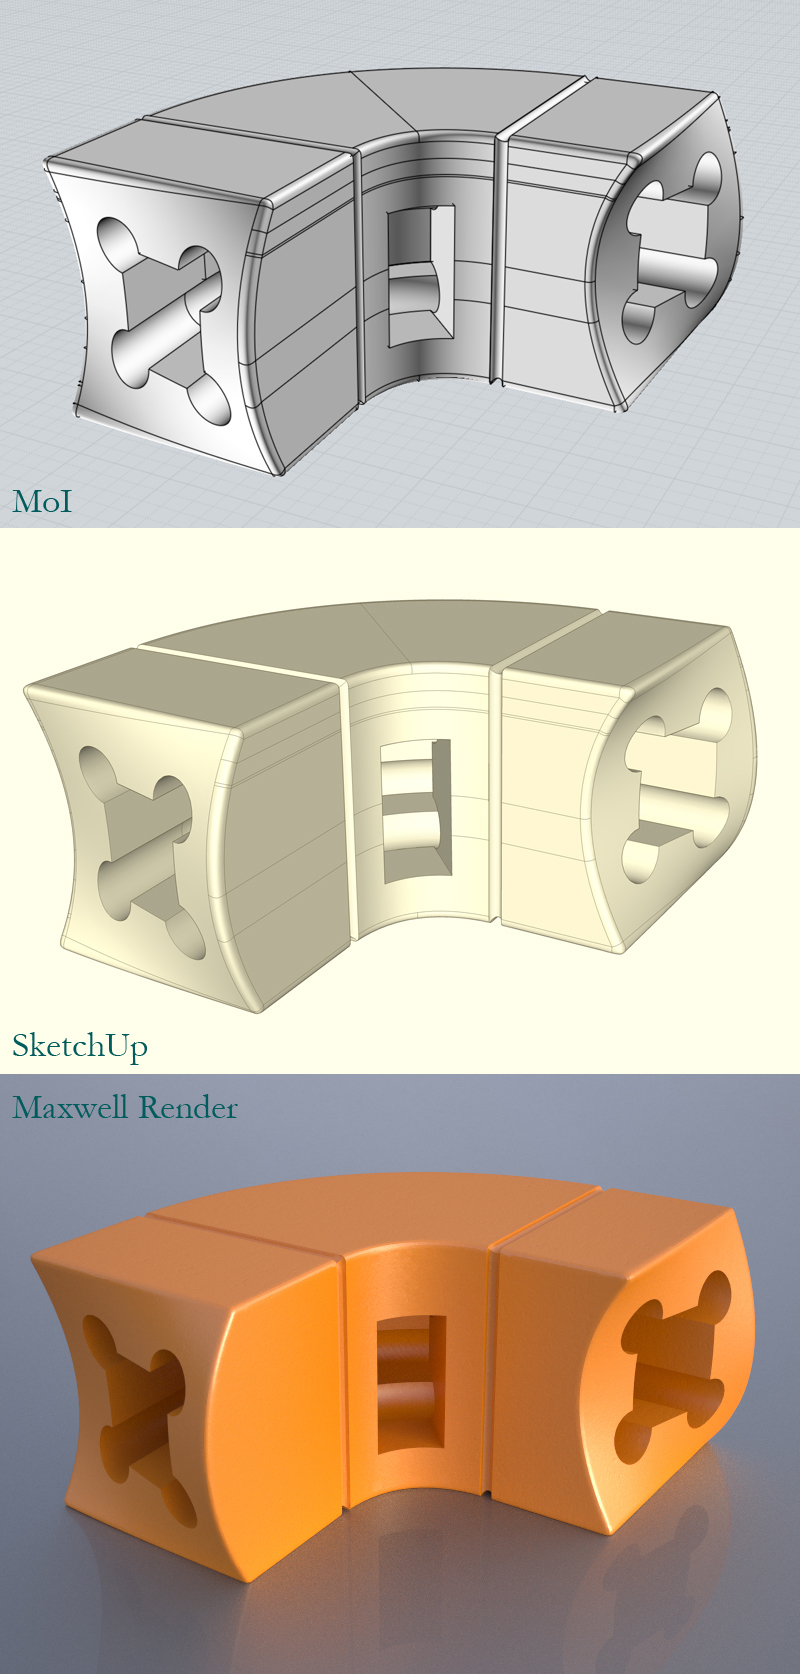 Life After SketchUp - which way to go? - WOODWEB's CAD Forum